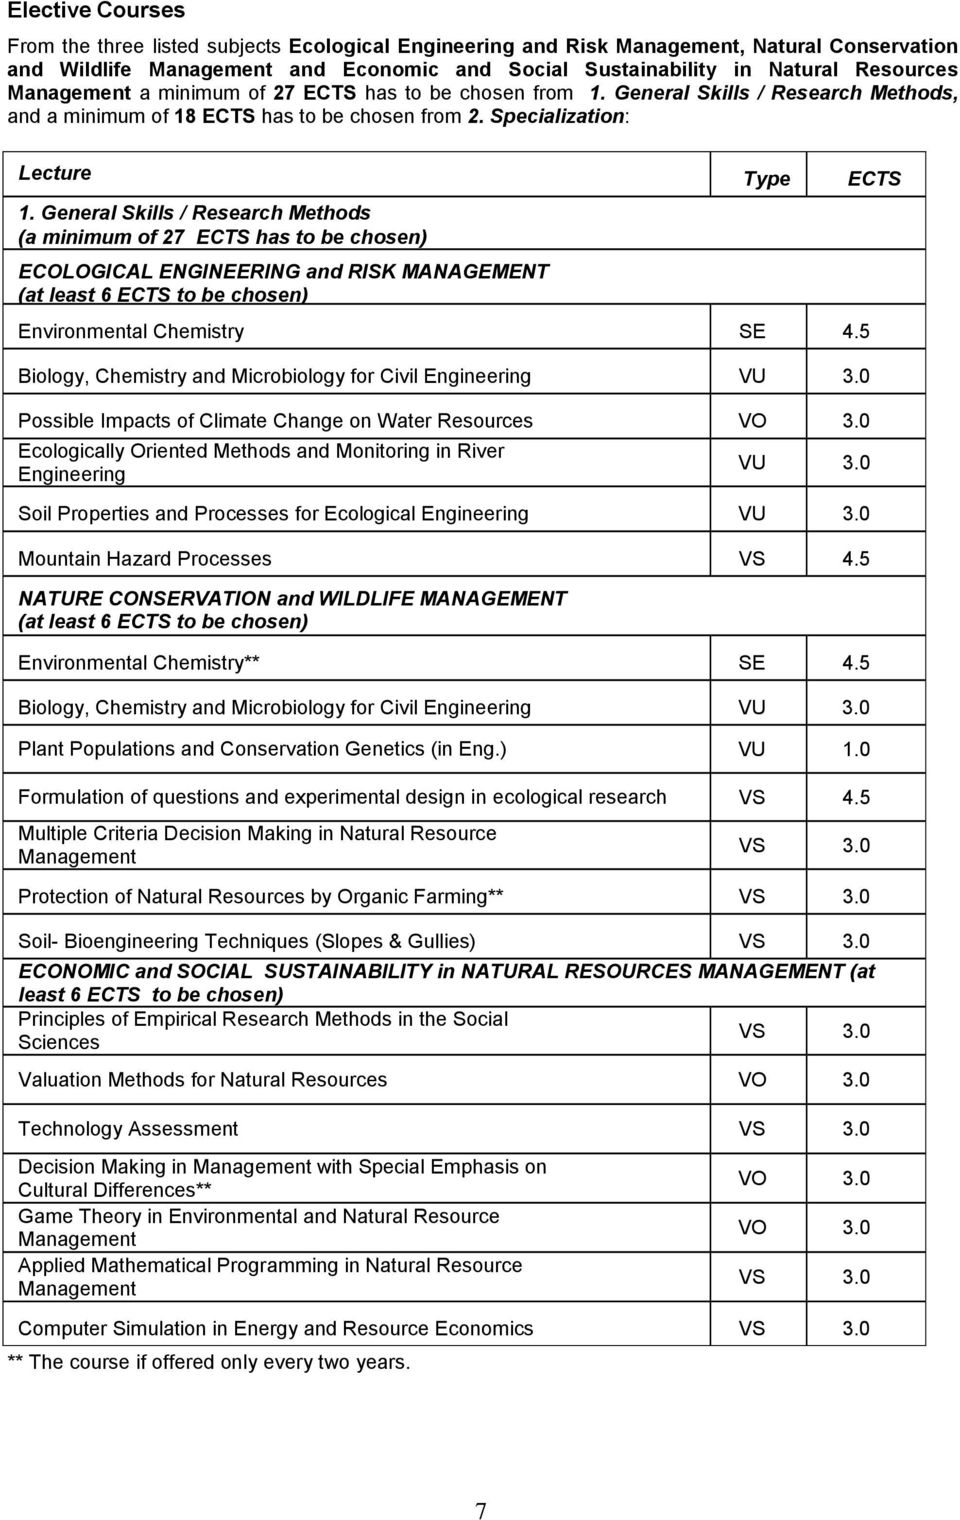 General Skills / Research Methods (a minimum of 27 ECTS has to be chosen) ECOLOGICAL ENGINEERING and RISK MANAGEMENT (at least 6 ECTS to be chosen) Environmental Chemistry SE 4.